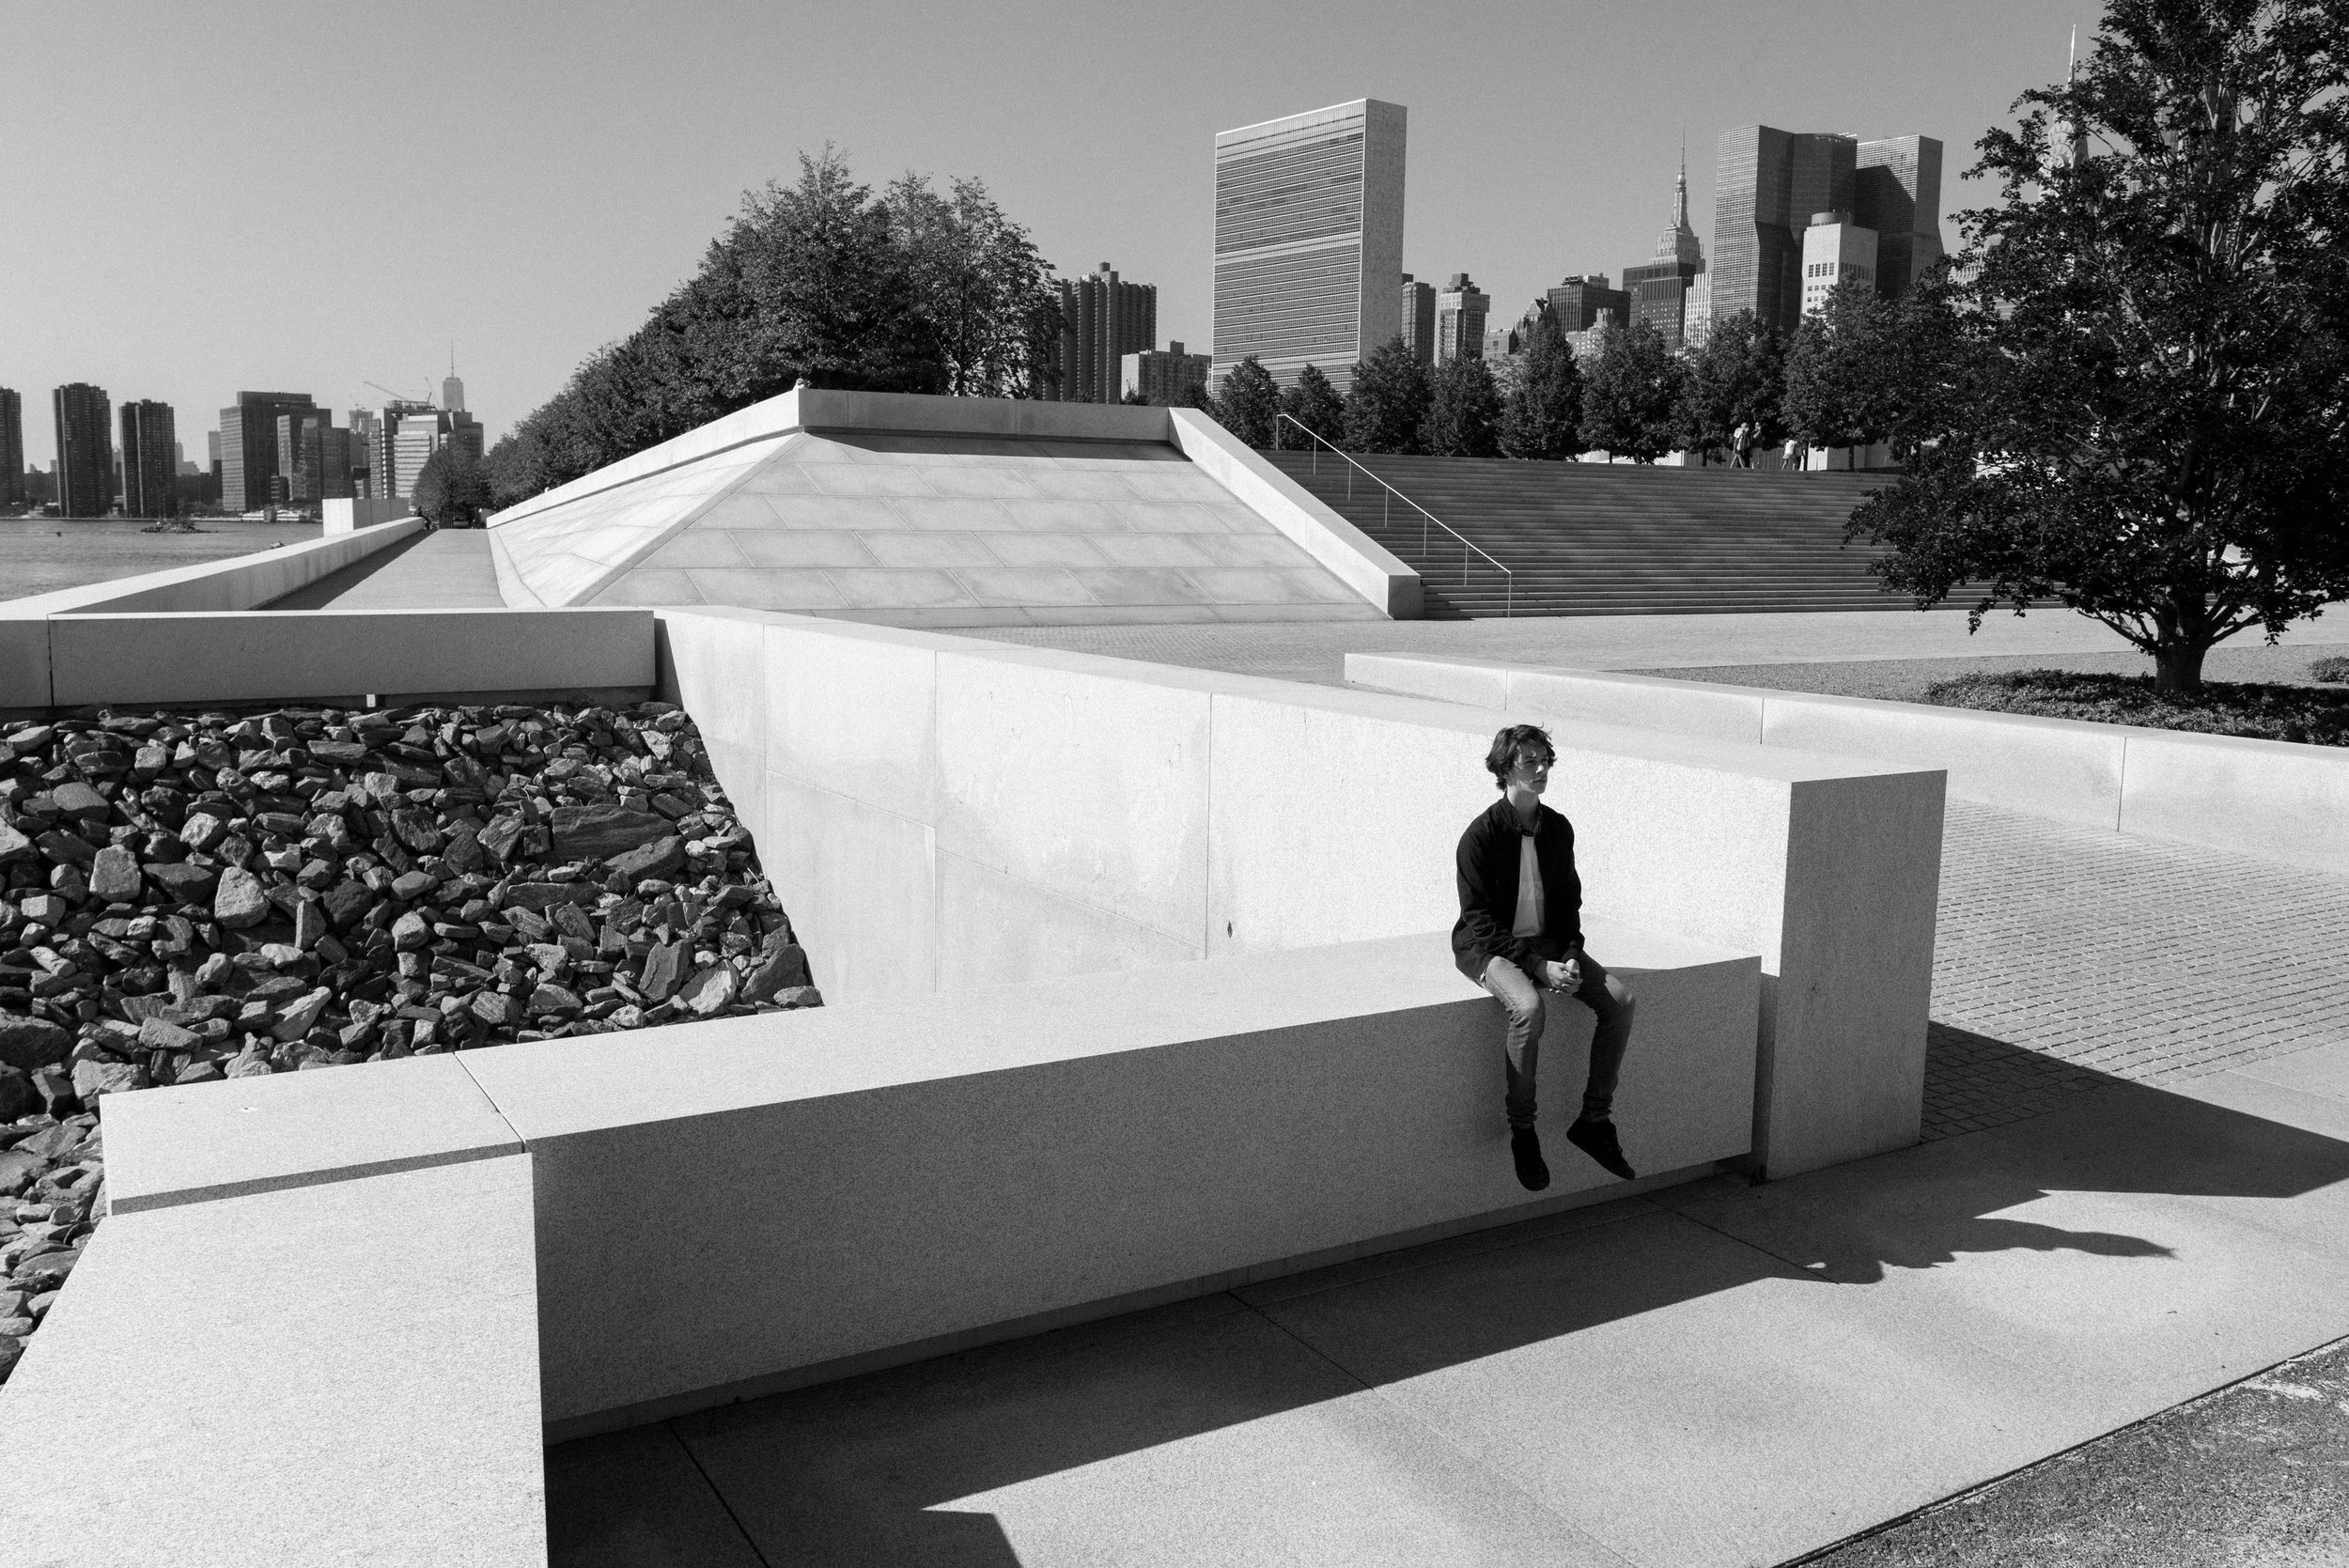 The winner of Four Freedoms Park's 3rd Annual Photo Contest: Lev Katreczko